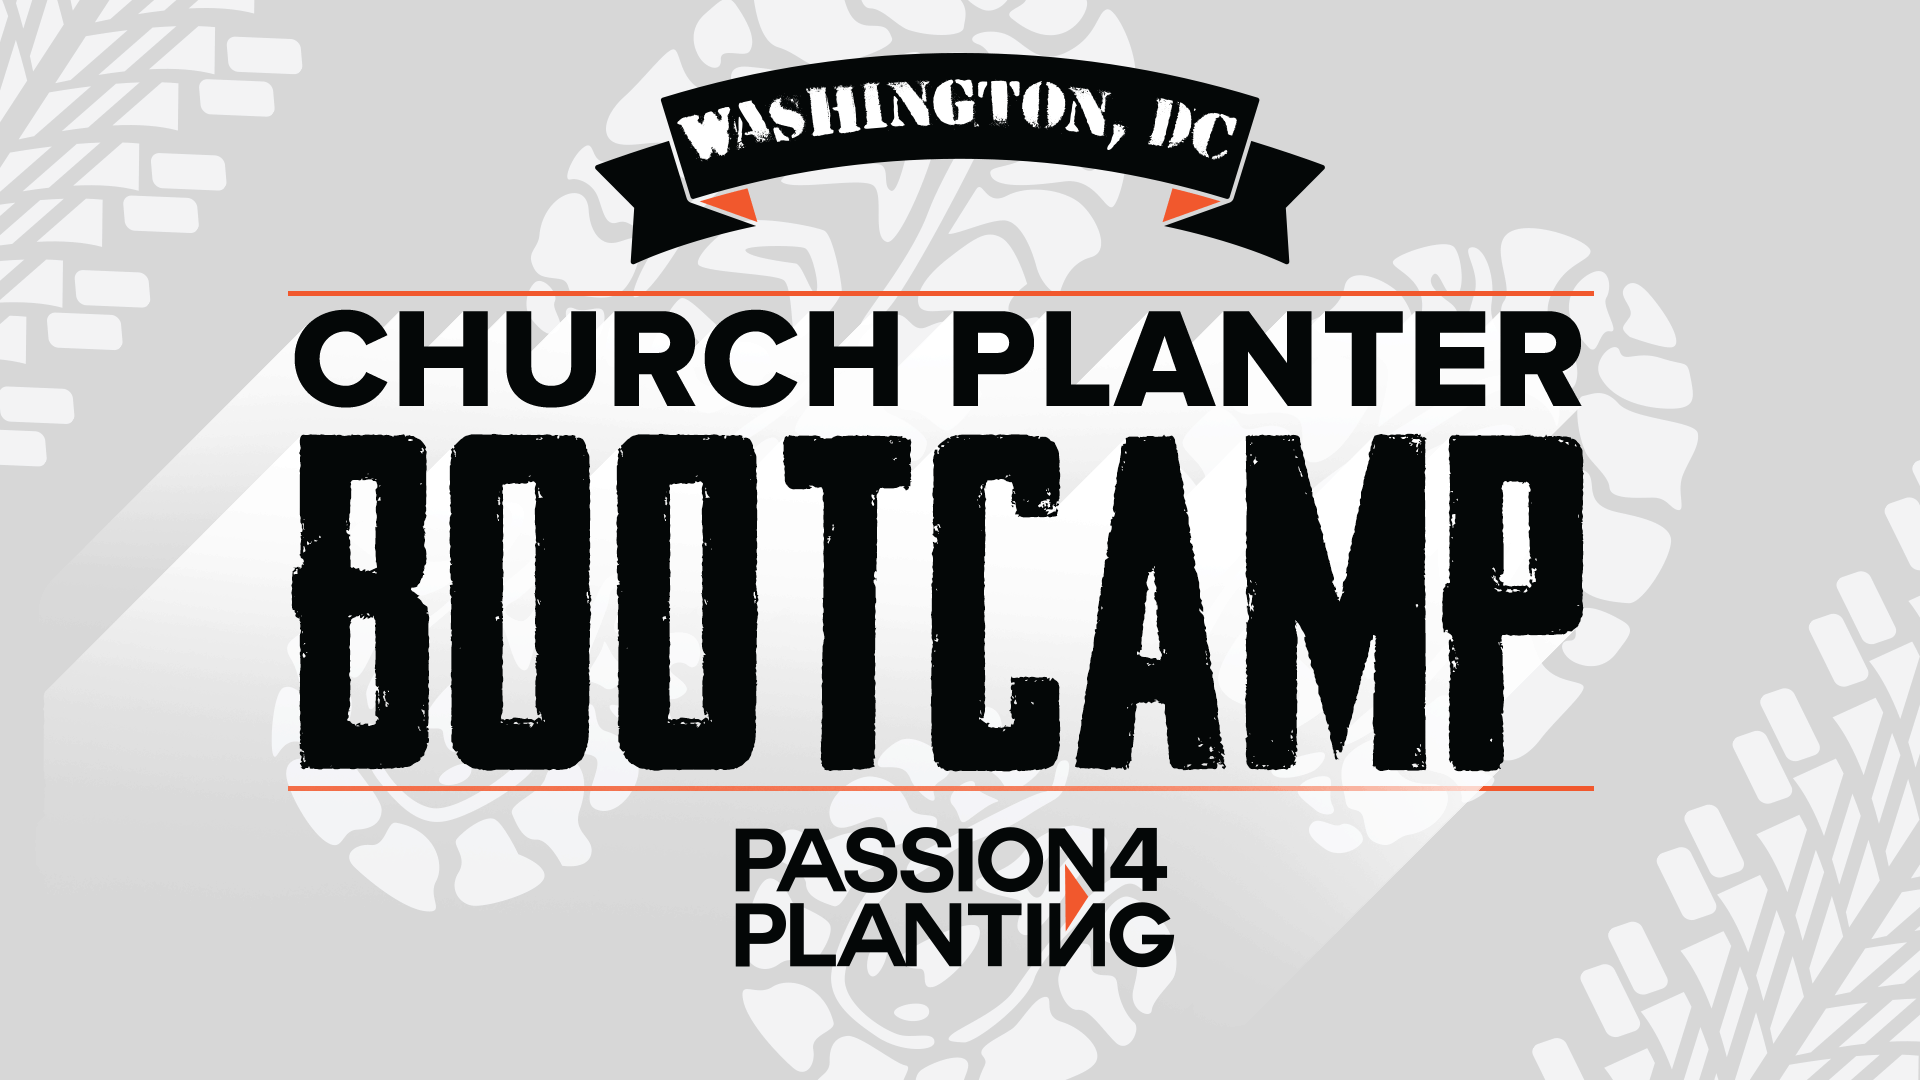 <p>Are you called to plant a church? Do you have a vision for starting new faith communities? Great! Calling and vision are vital in church planting ministry. However, you&#8217;ll need more than calling and vision to start a healthy church. You&#8217;ll need well-thought out strategies, a comprehensive plan to implement [&hellip;]</p>